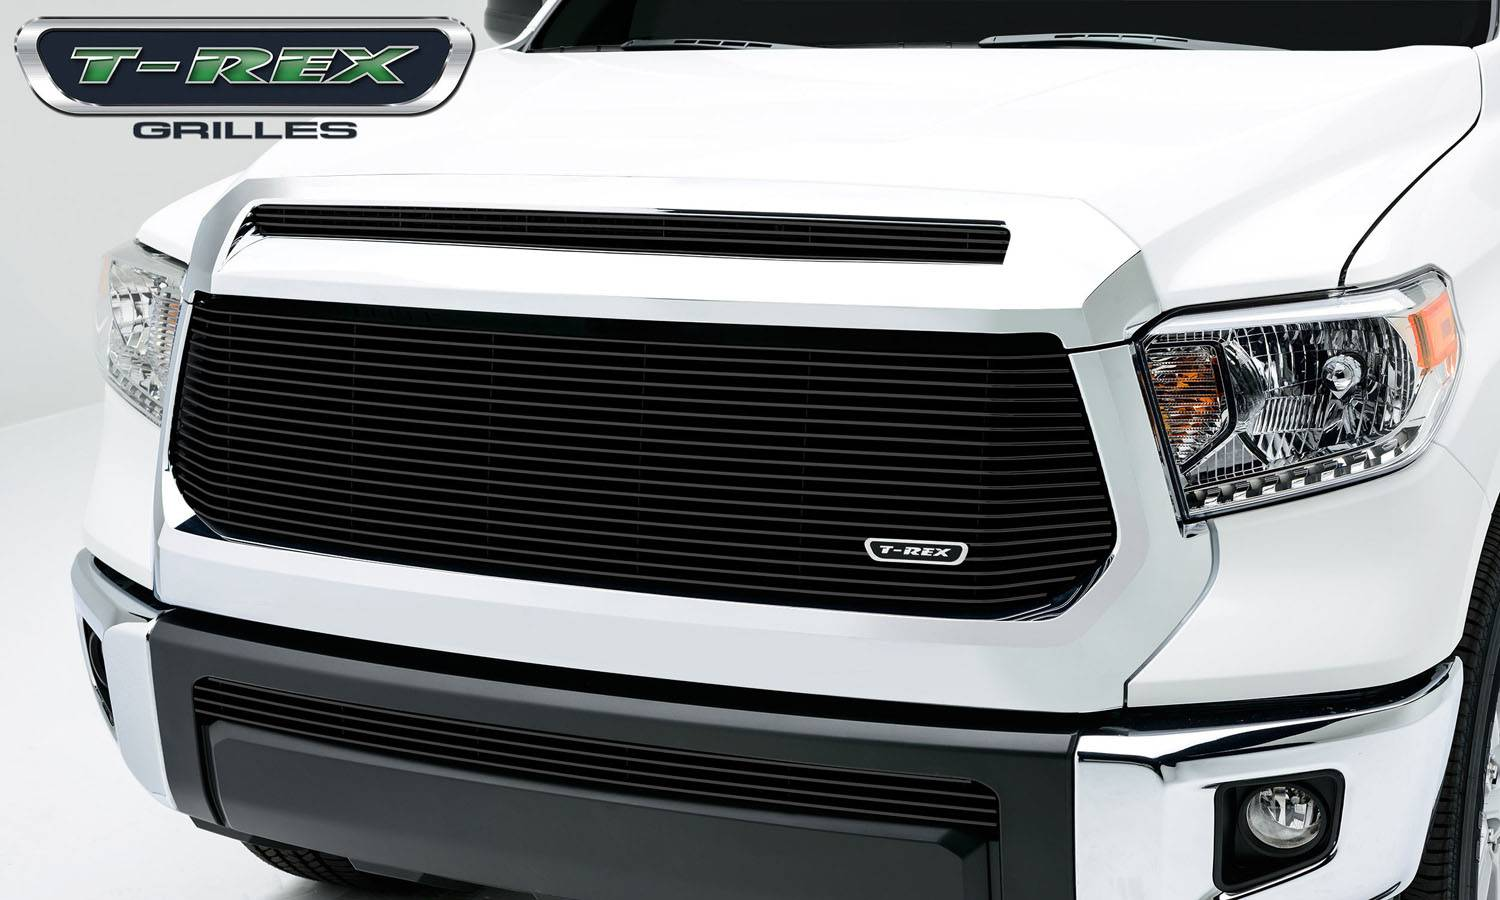 T-REX Toyota Tundra  Billet Grille, Main w/o OE logo recessed area, Replacement, 1 Pc, Black Powdercoated Aluminum Bars - Pt # 20965B